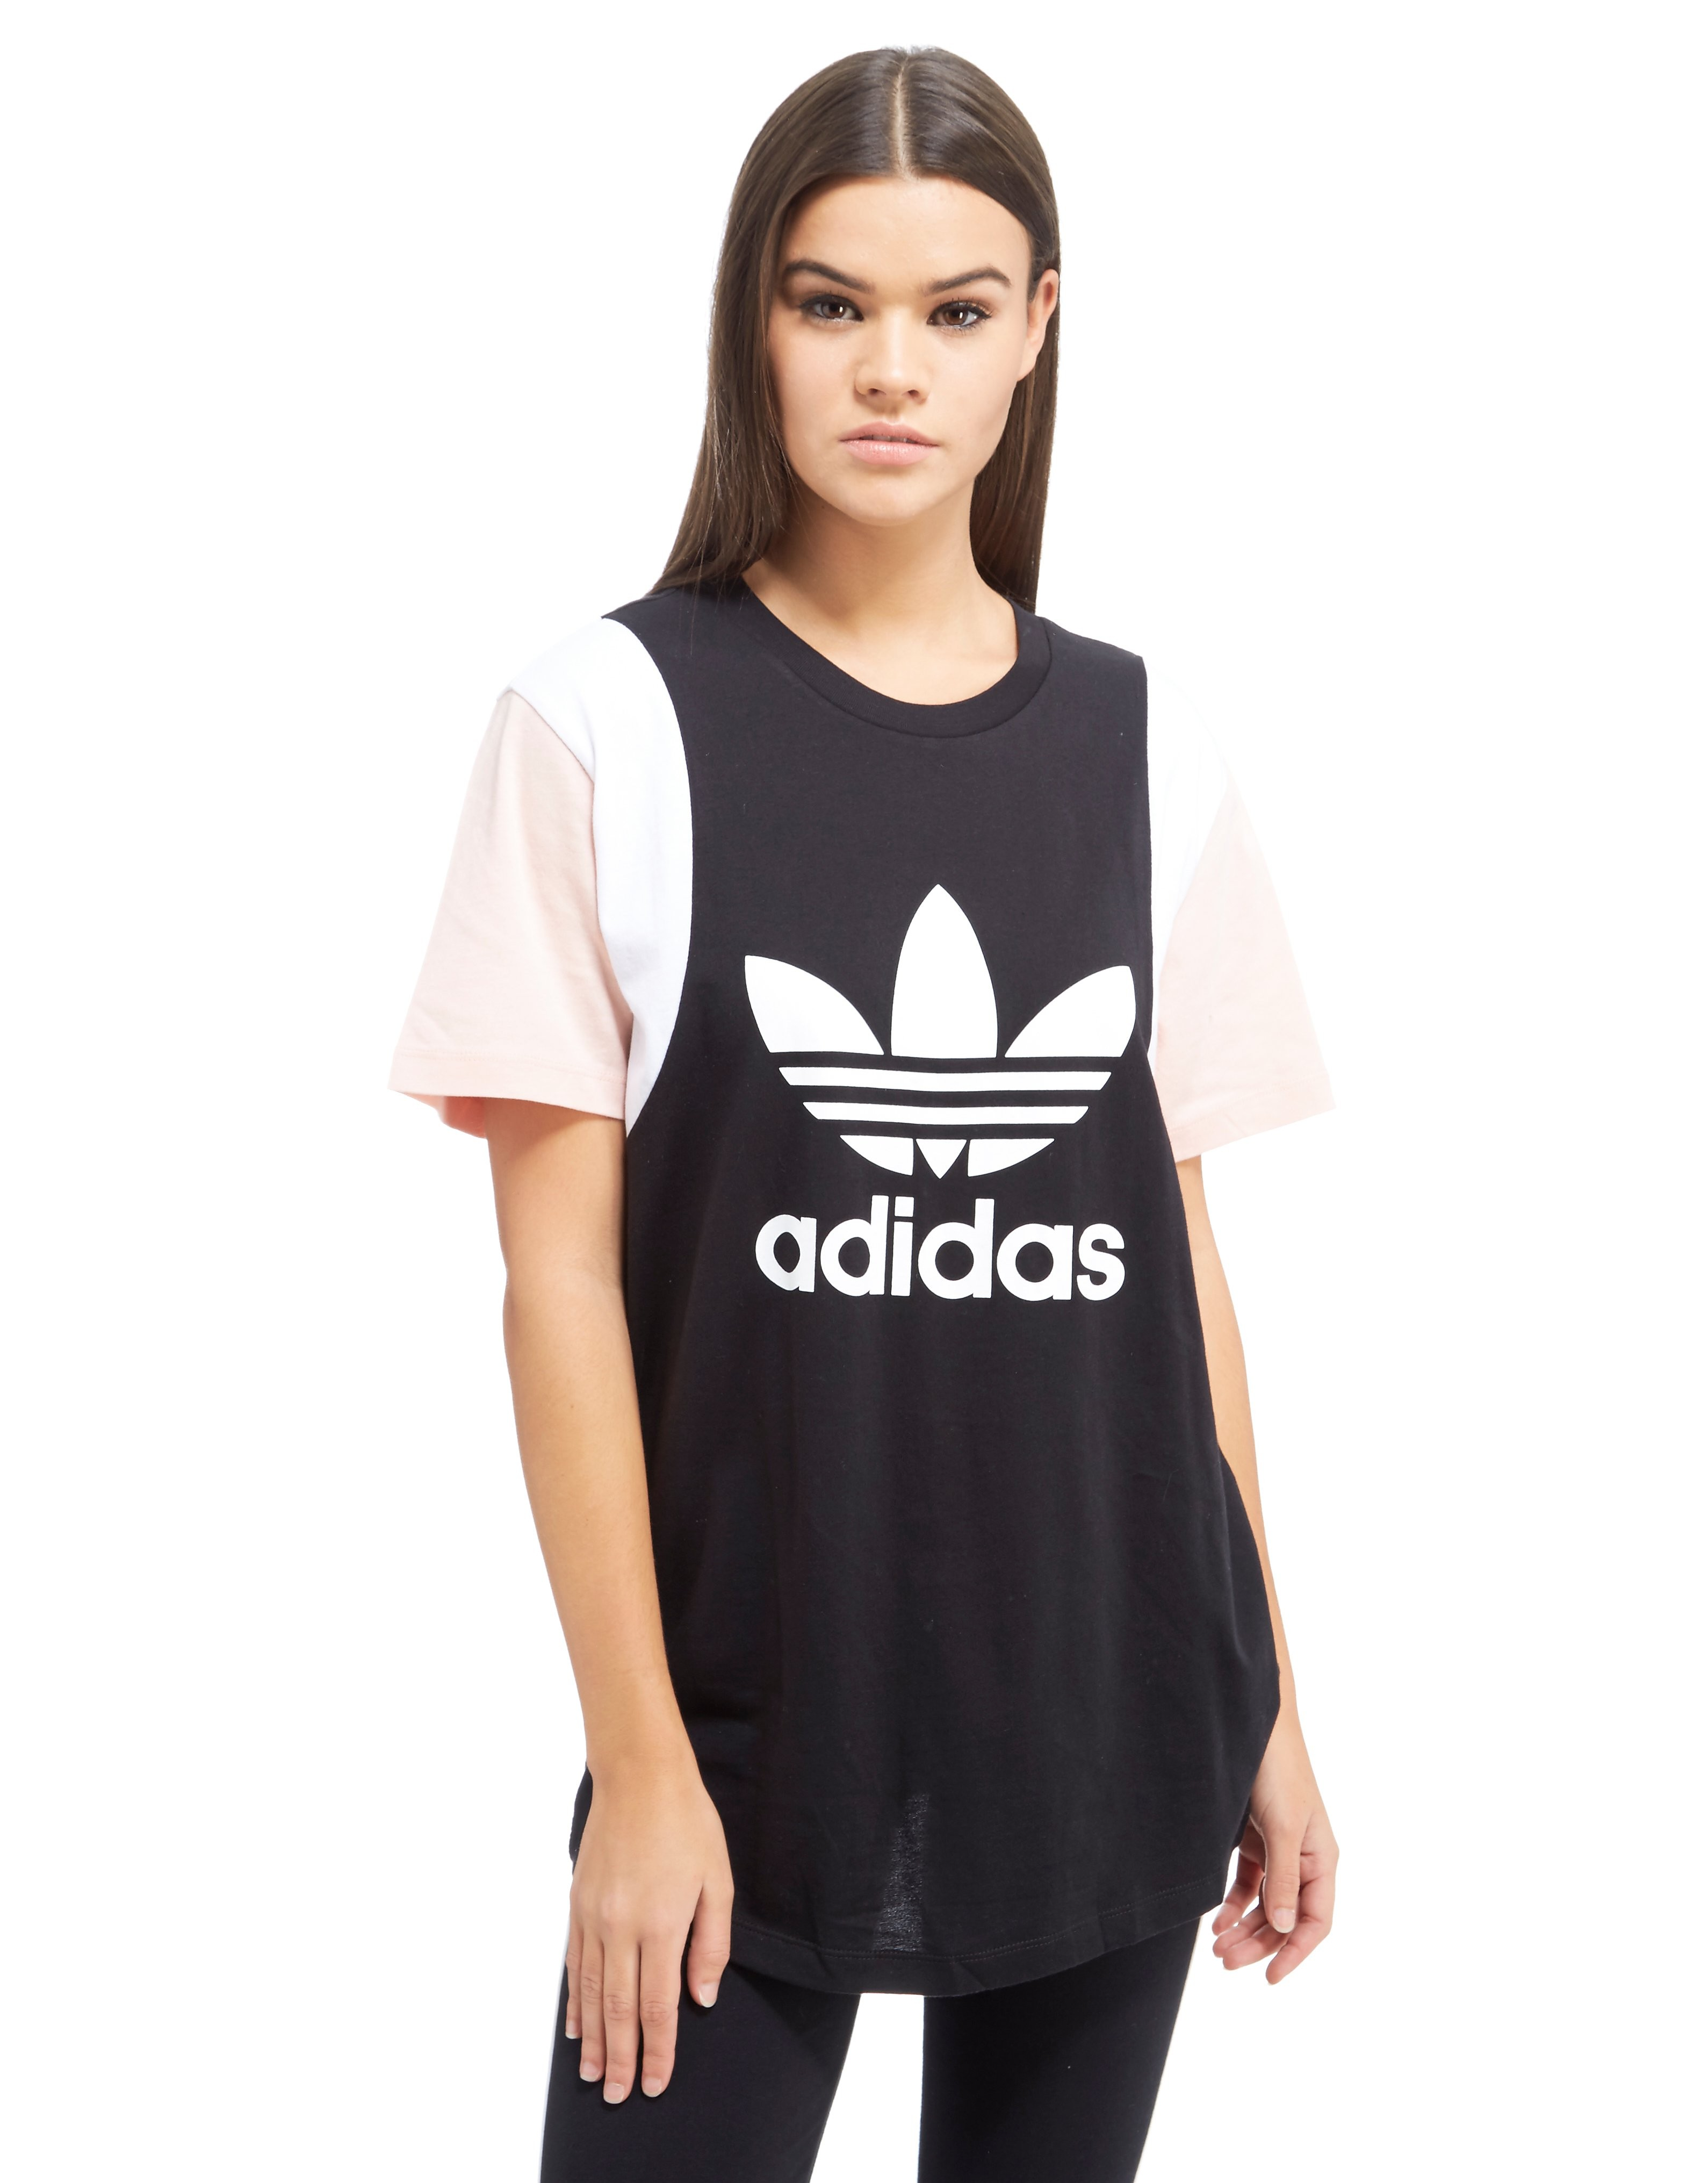 adidas Originals Colour Block T-Shirt